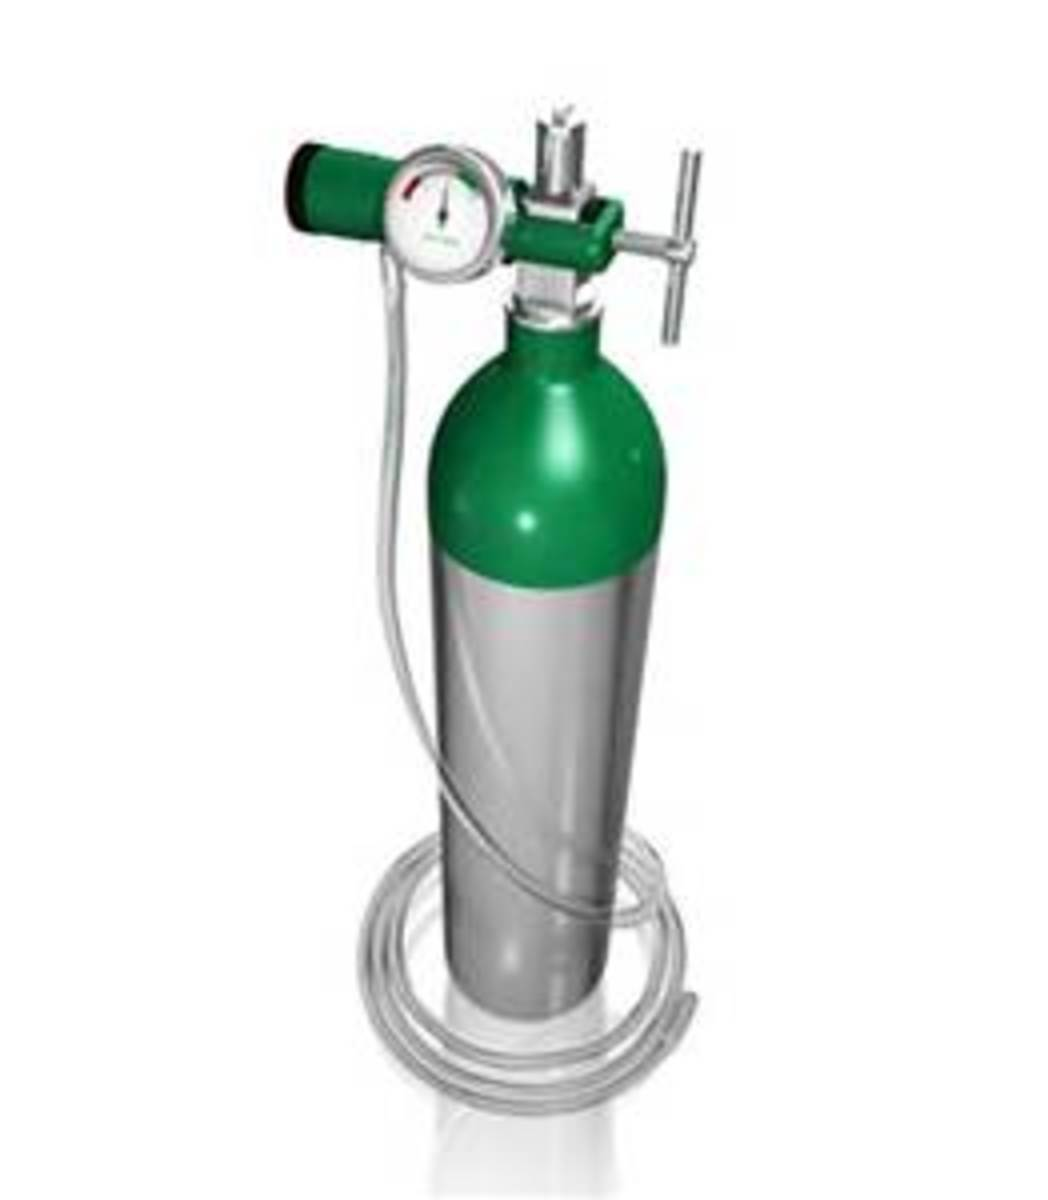 Oxygen tank, if you're on oxygen therapy